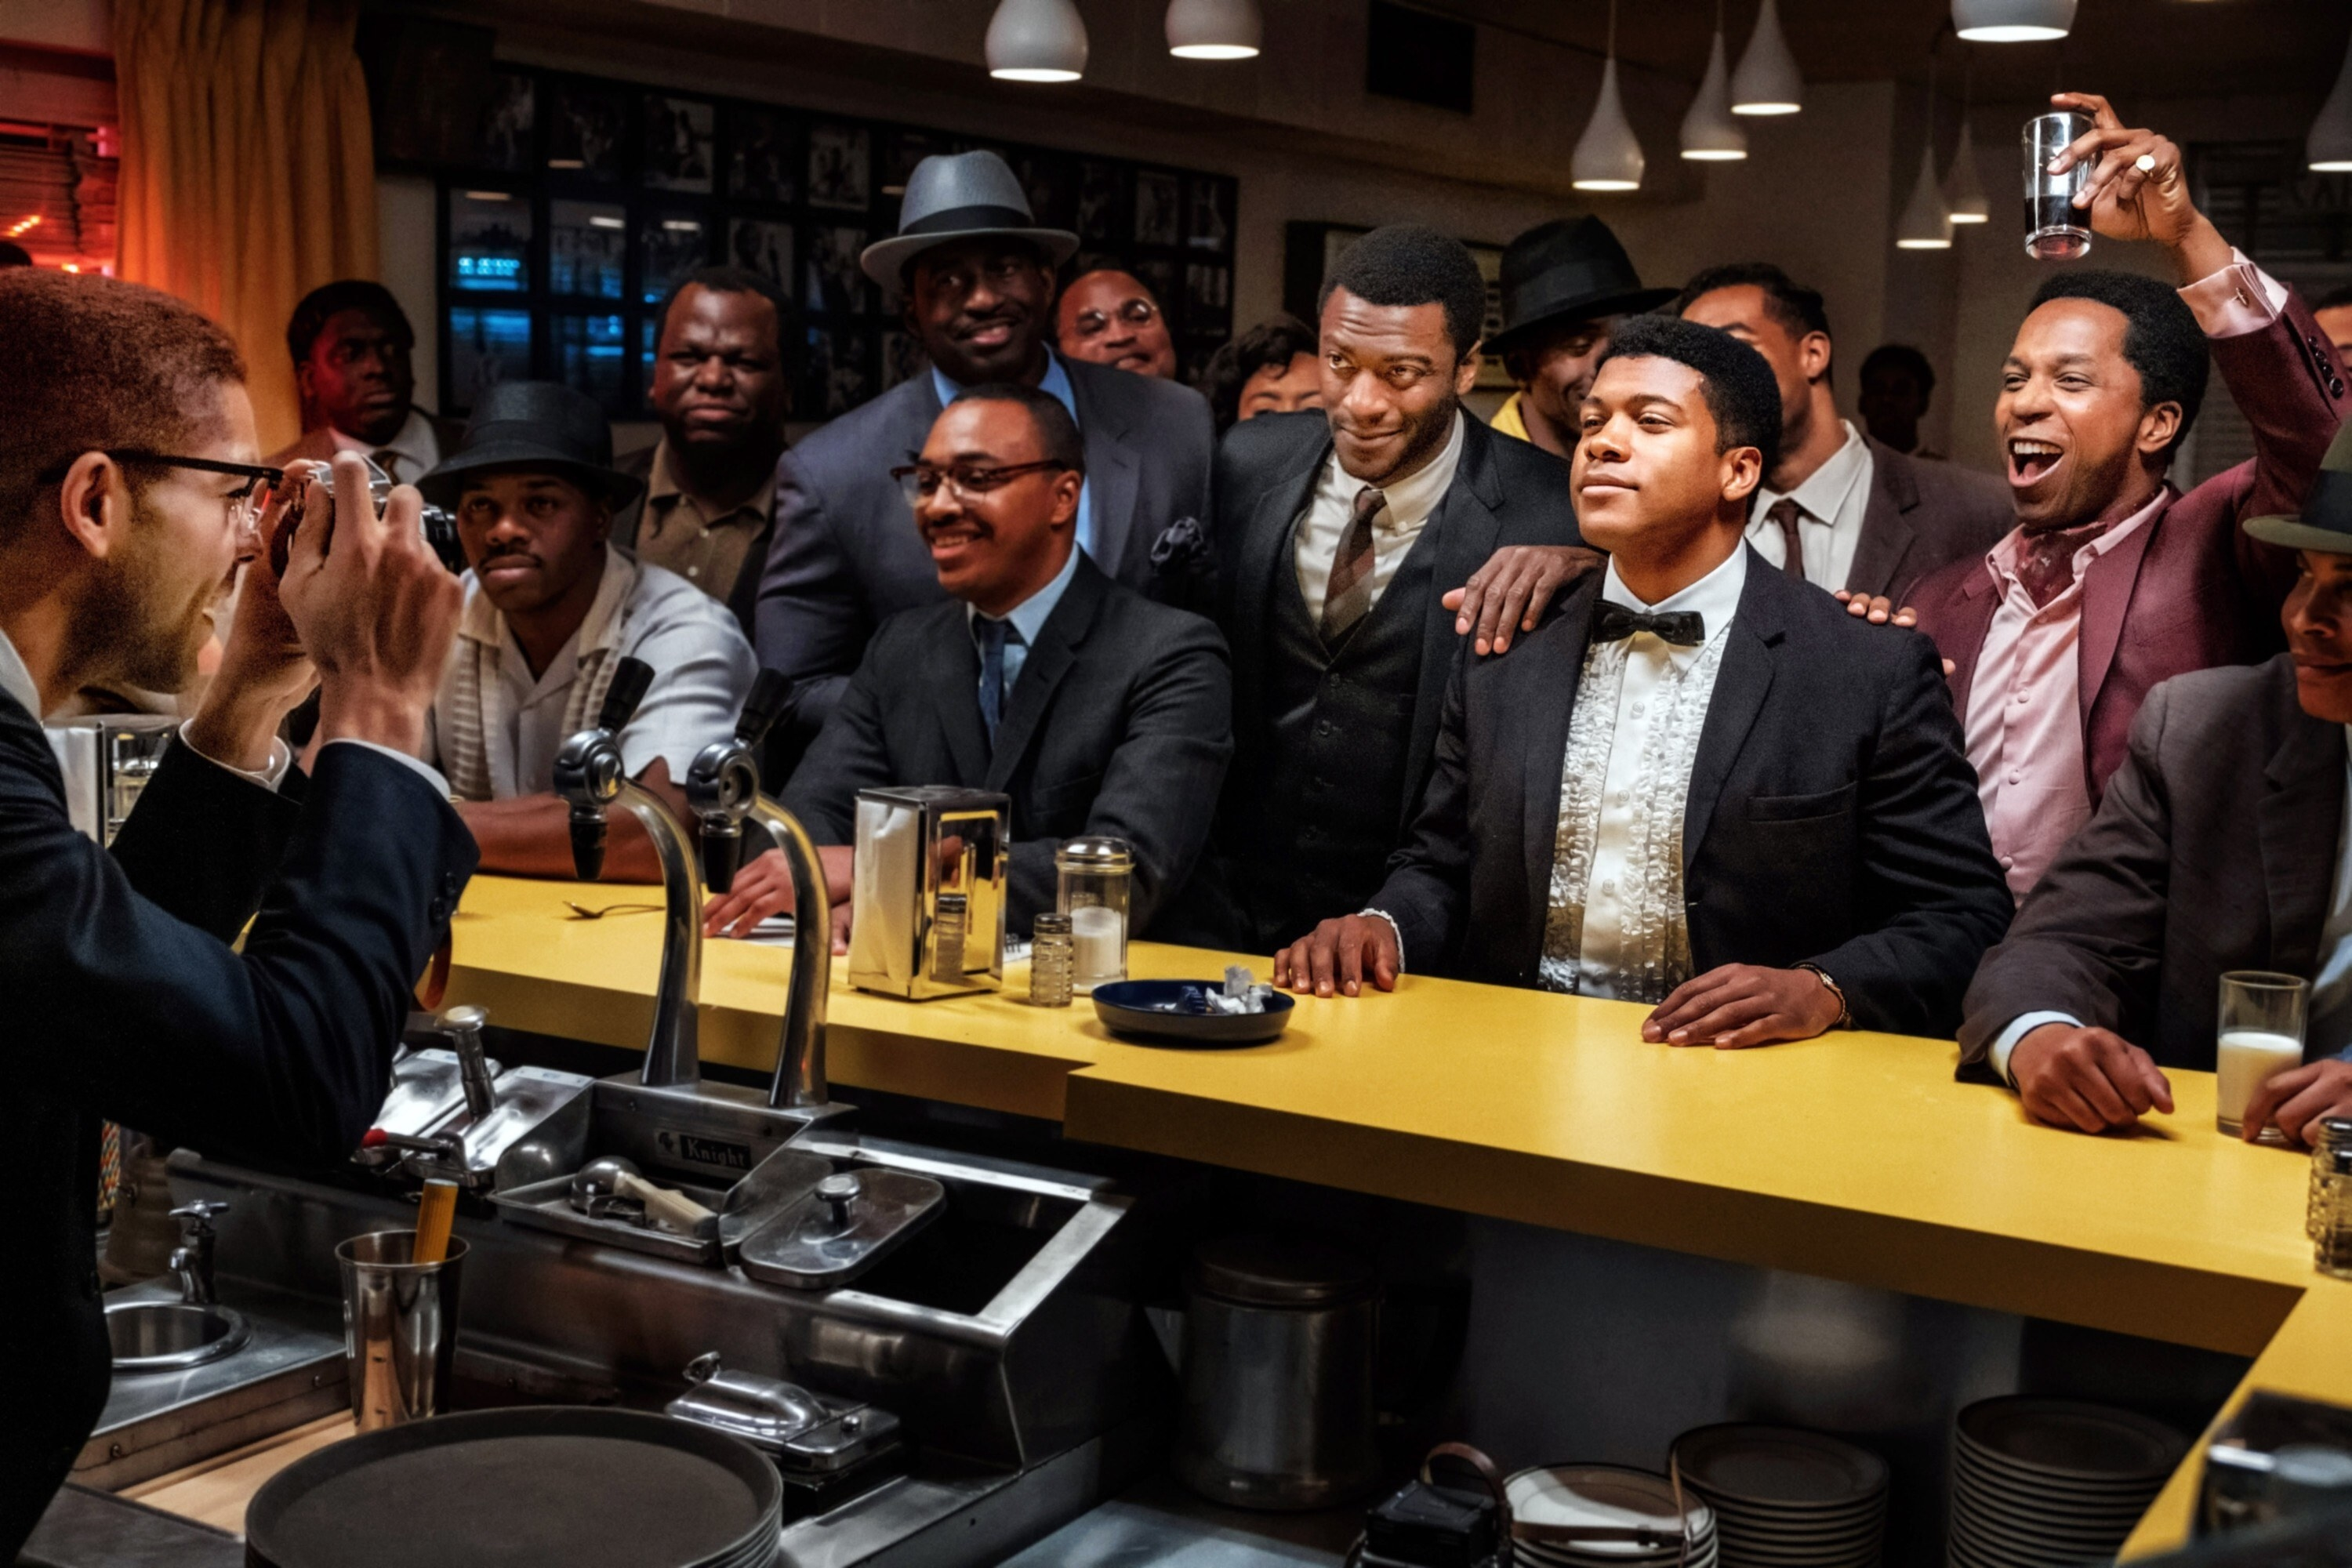 ONE NIGHT IN MIAMI, beginning at center from left: Aldis Hodge as Jim Brown, Eli Goree as Cassius Clay, and Leslie Odom Jr. as Sam Cooke